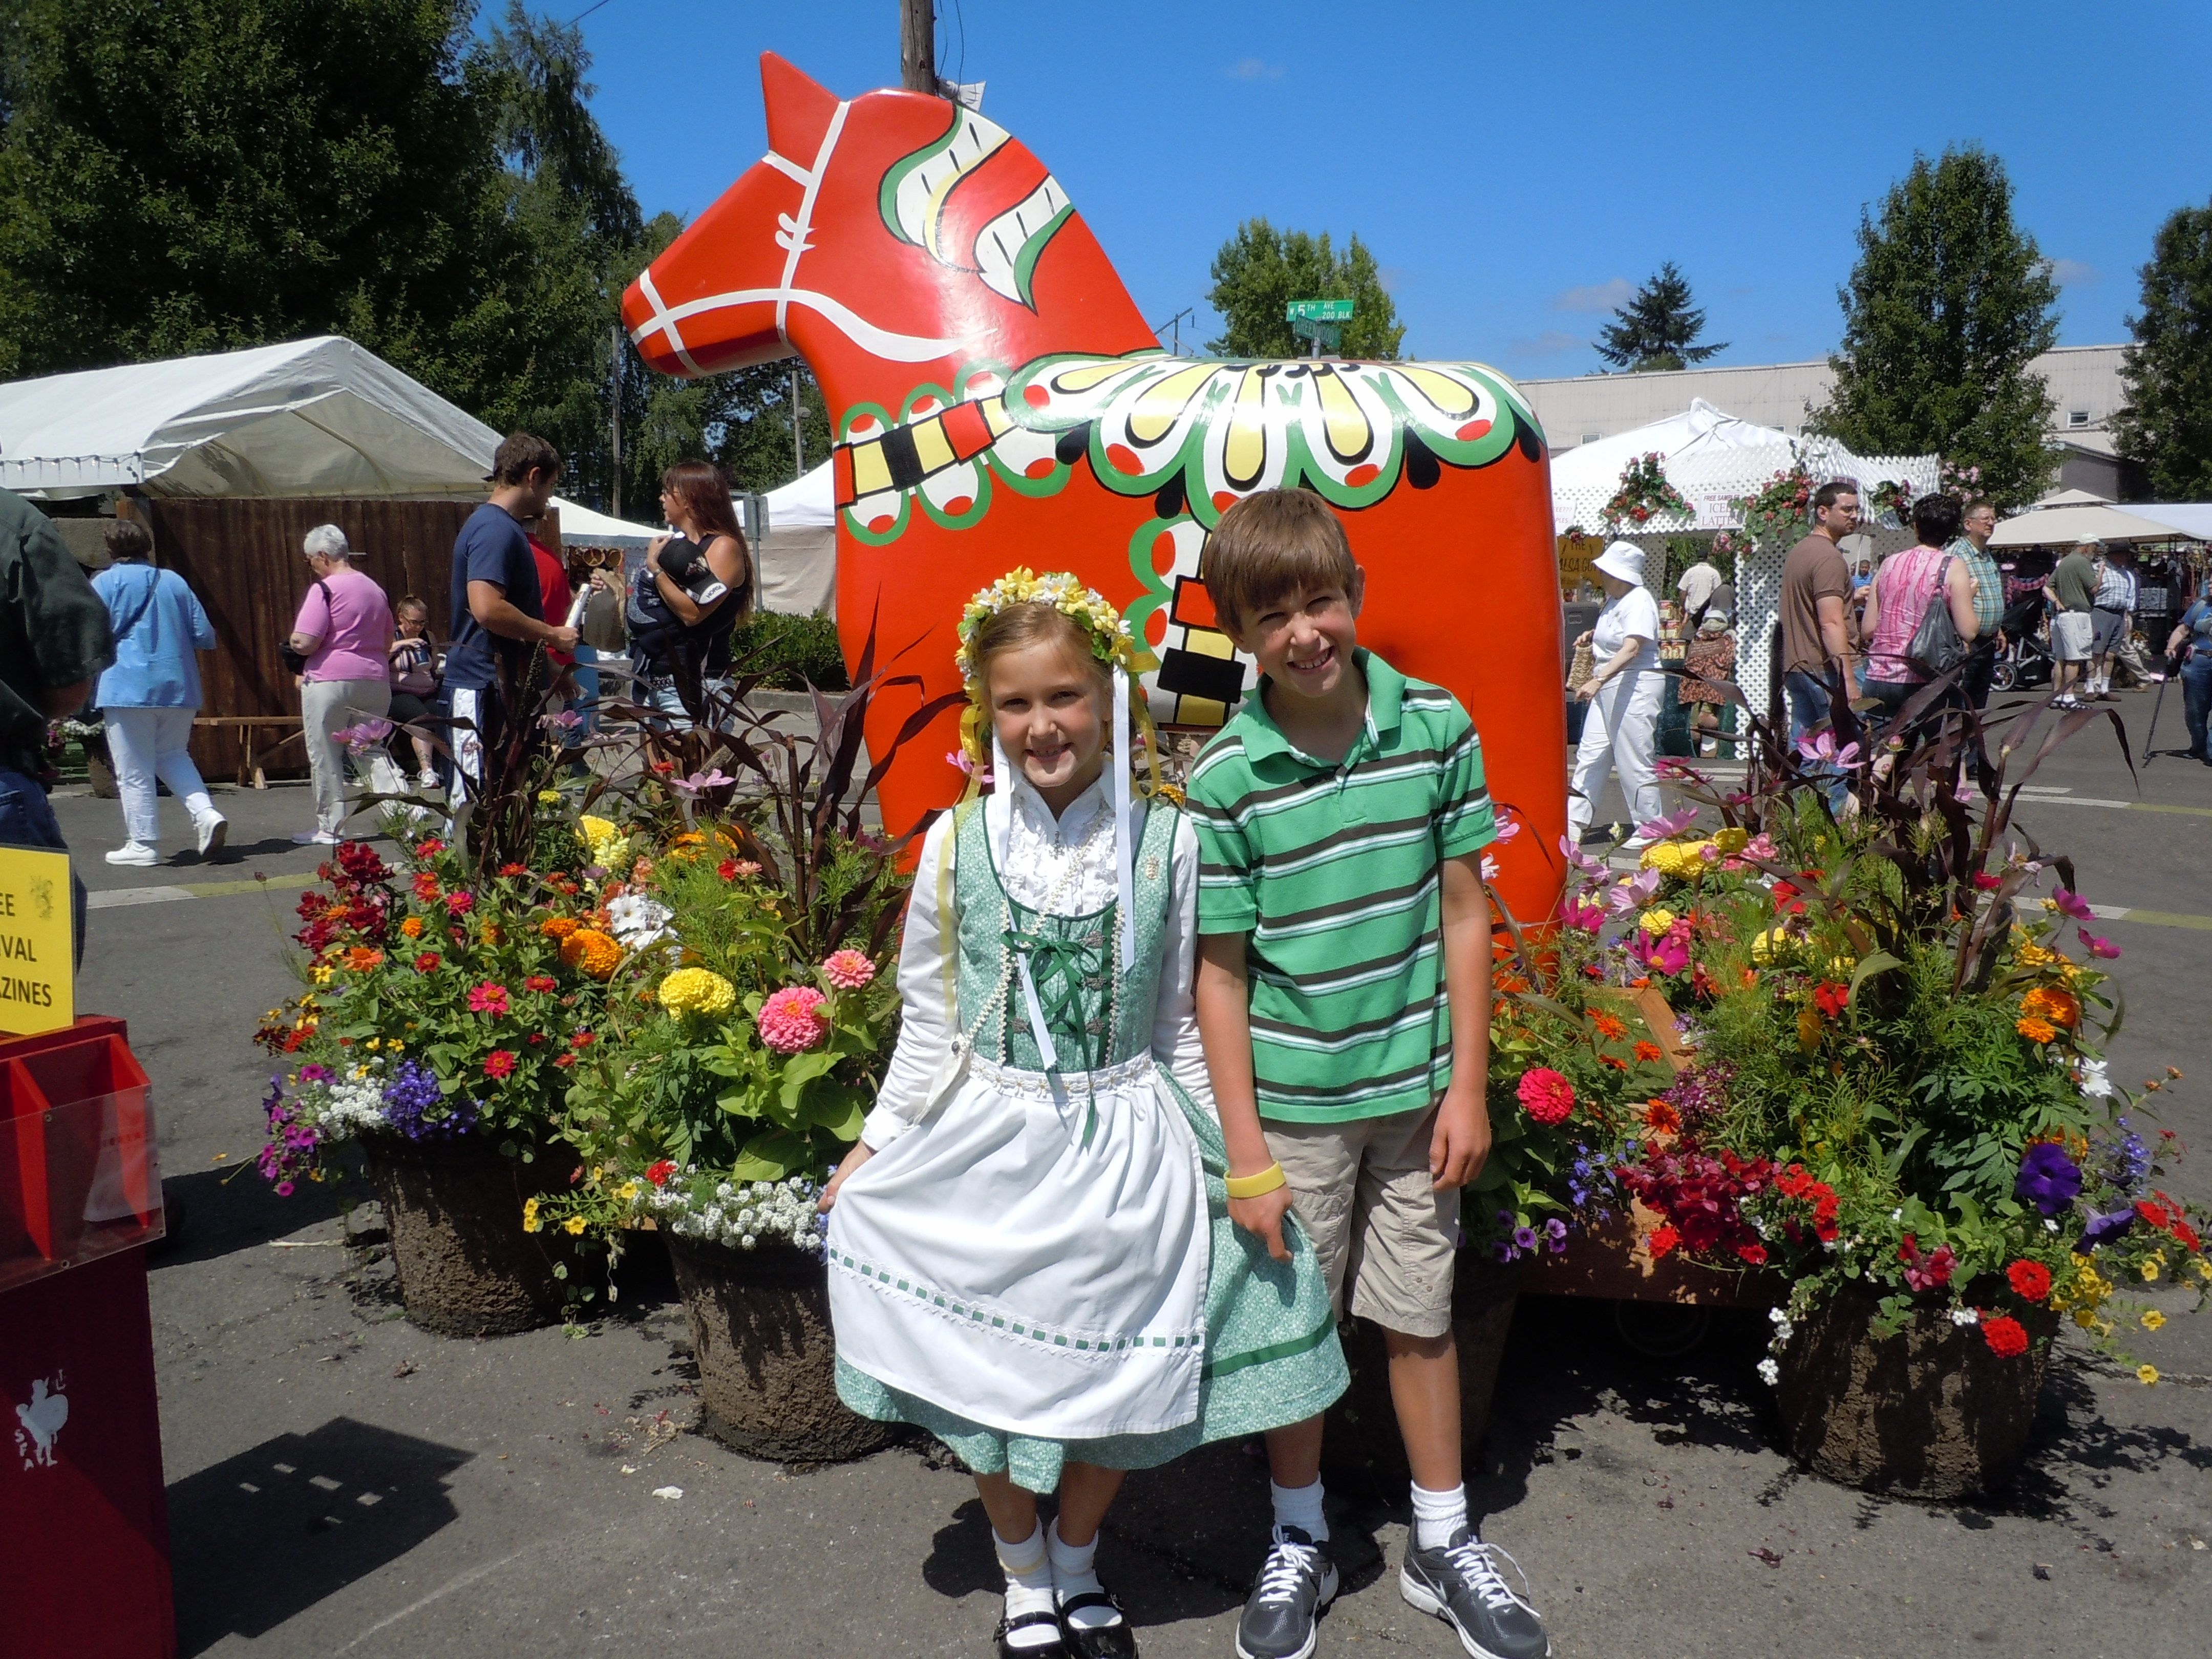 Every Summer The Scandinavian Festival Fills Junction City Or Streets With Music Culture Costumes And Delicacie Scandinavian Festival Junction City Oregon